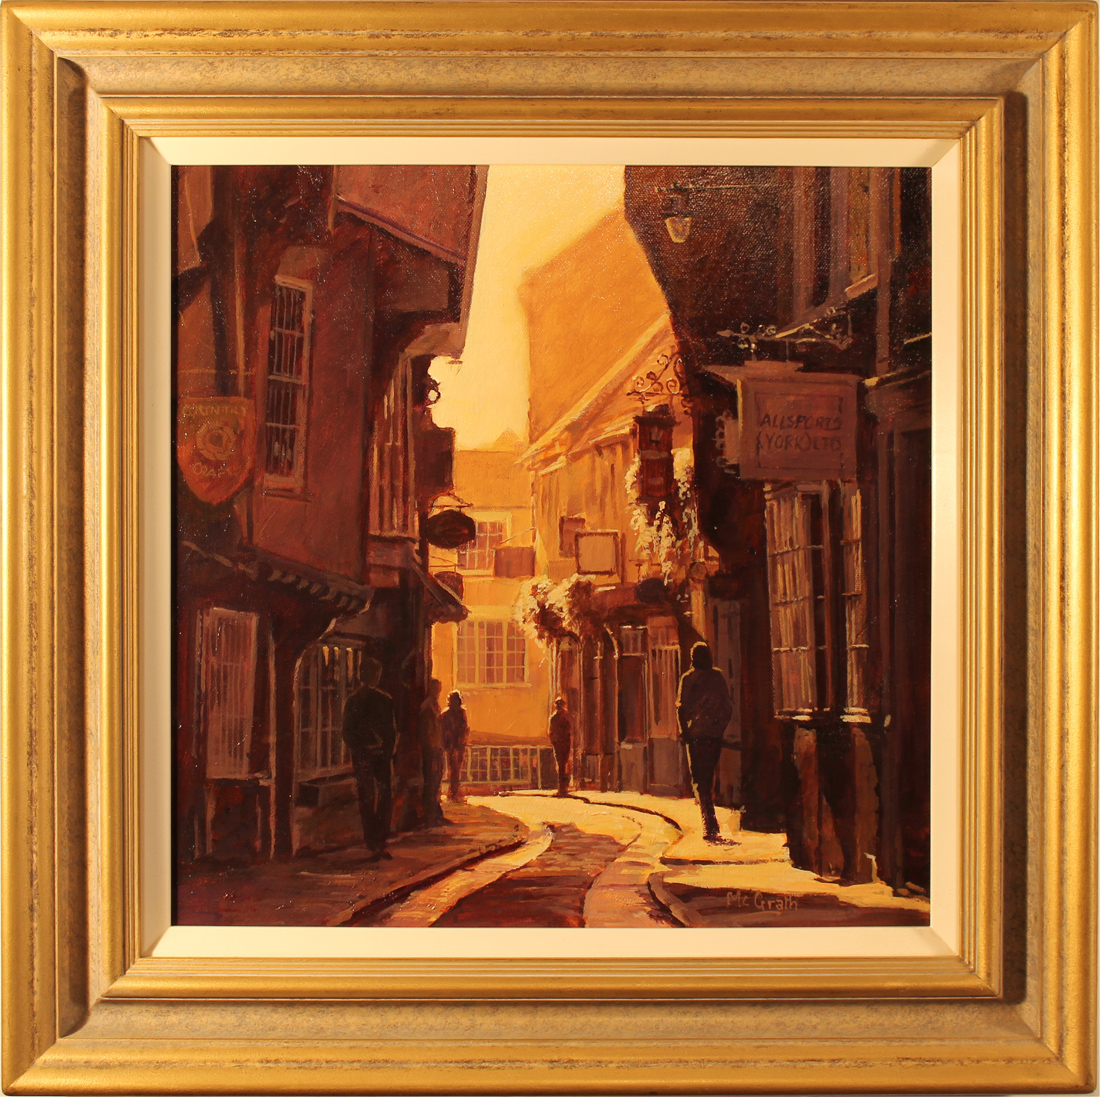 Stephen McGrath, Original oil painting on canvas, Sunlight Through the Shambles, York, click to enlarge